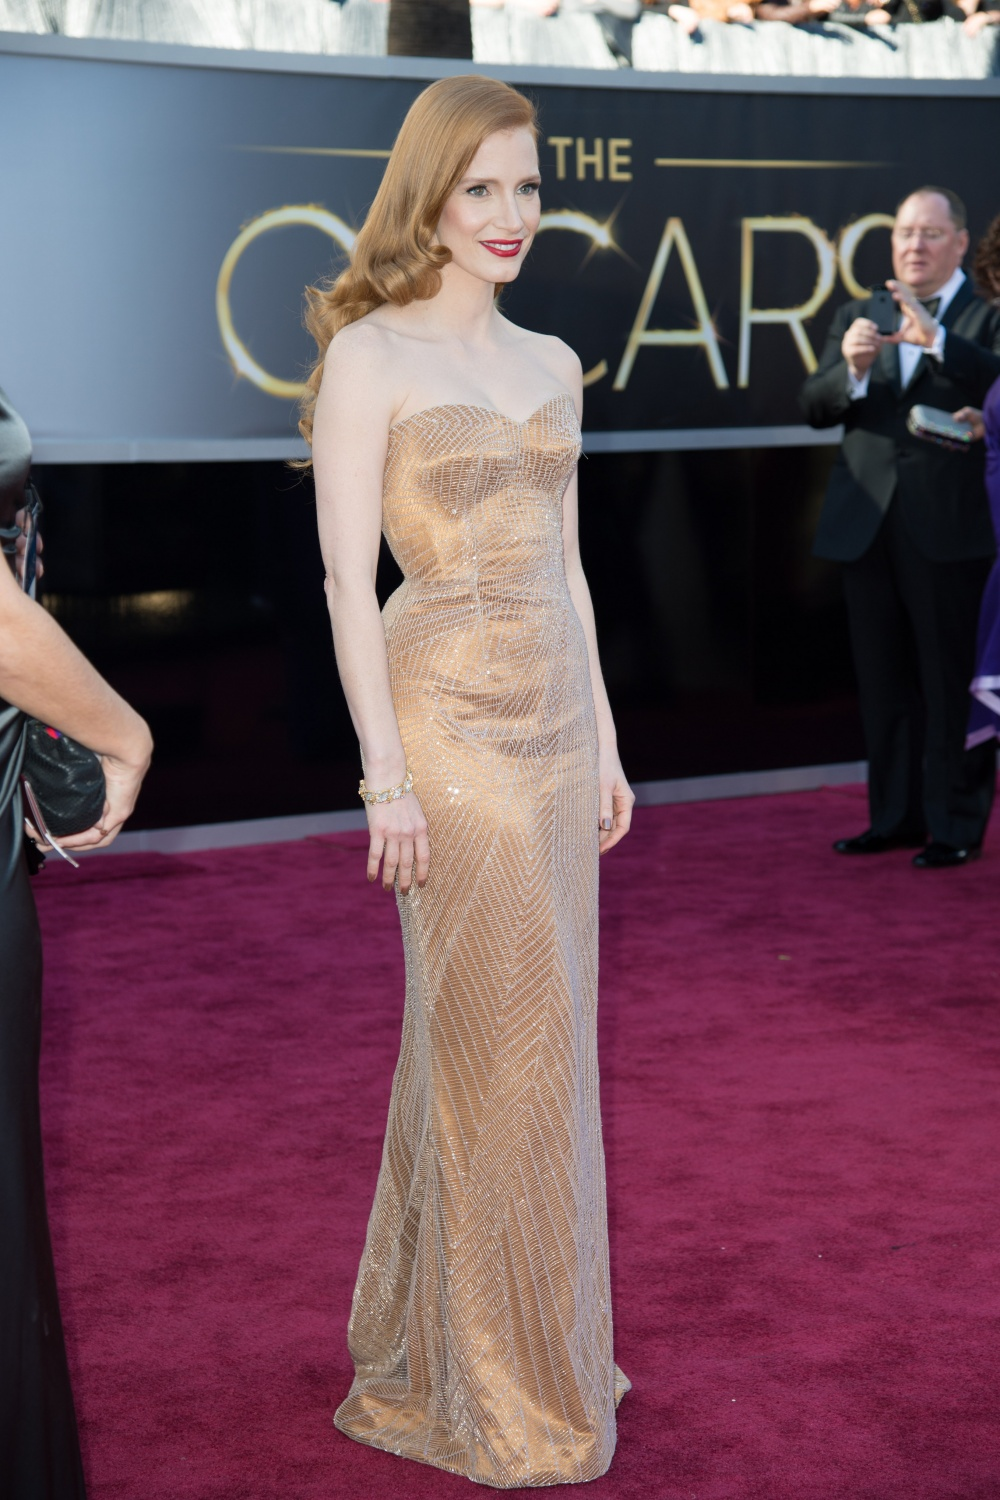 Jessica Chastain on The Oscars 2013 Red Carpet  YouTube